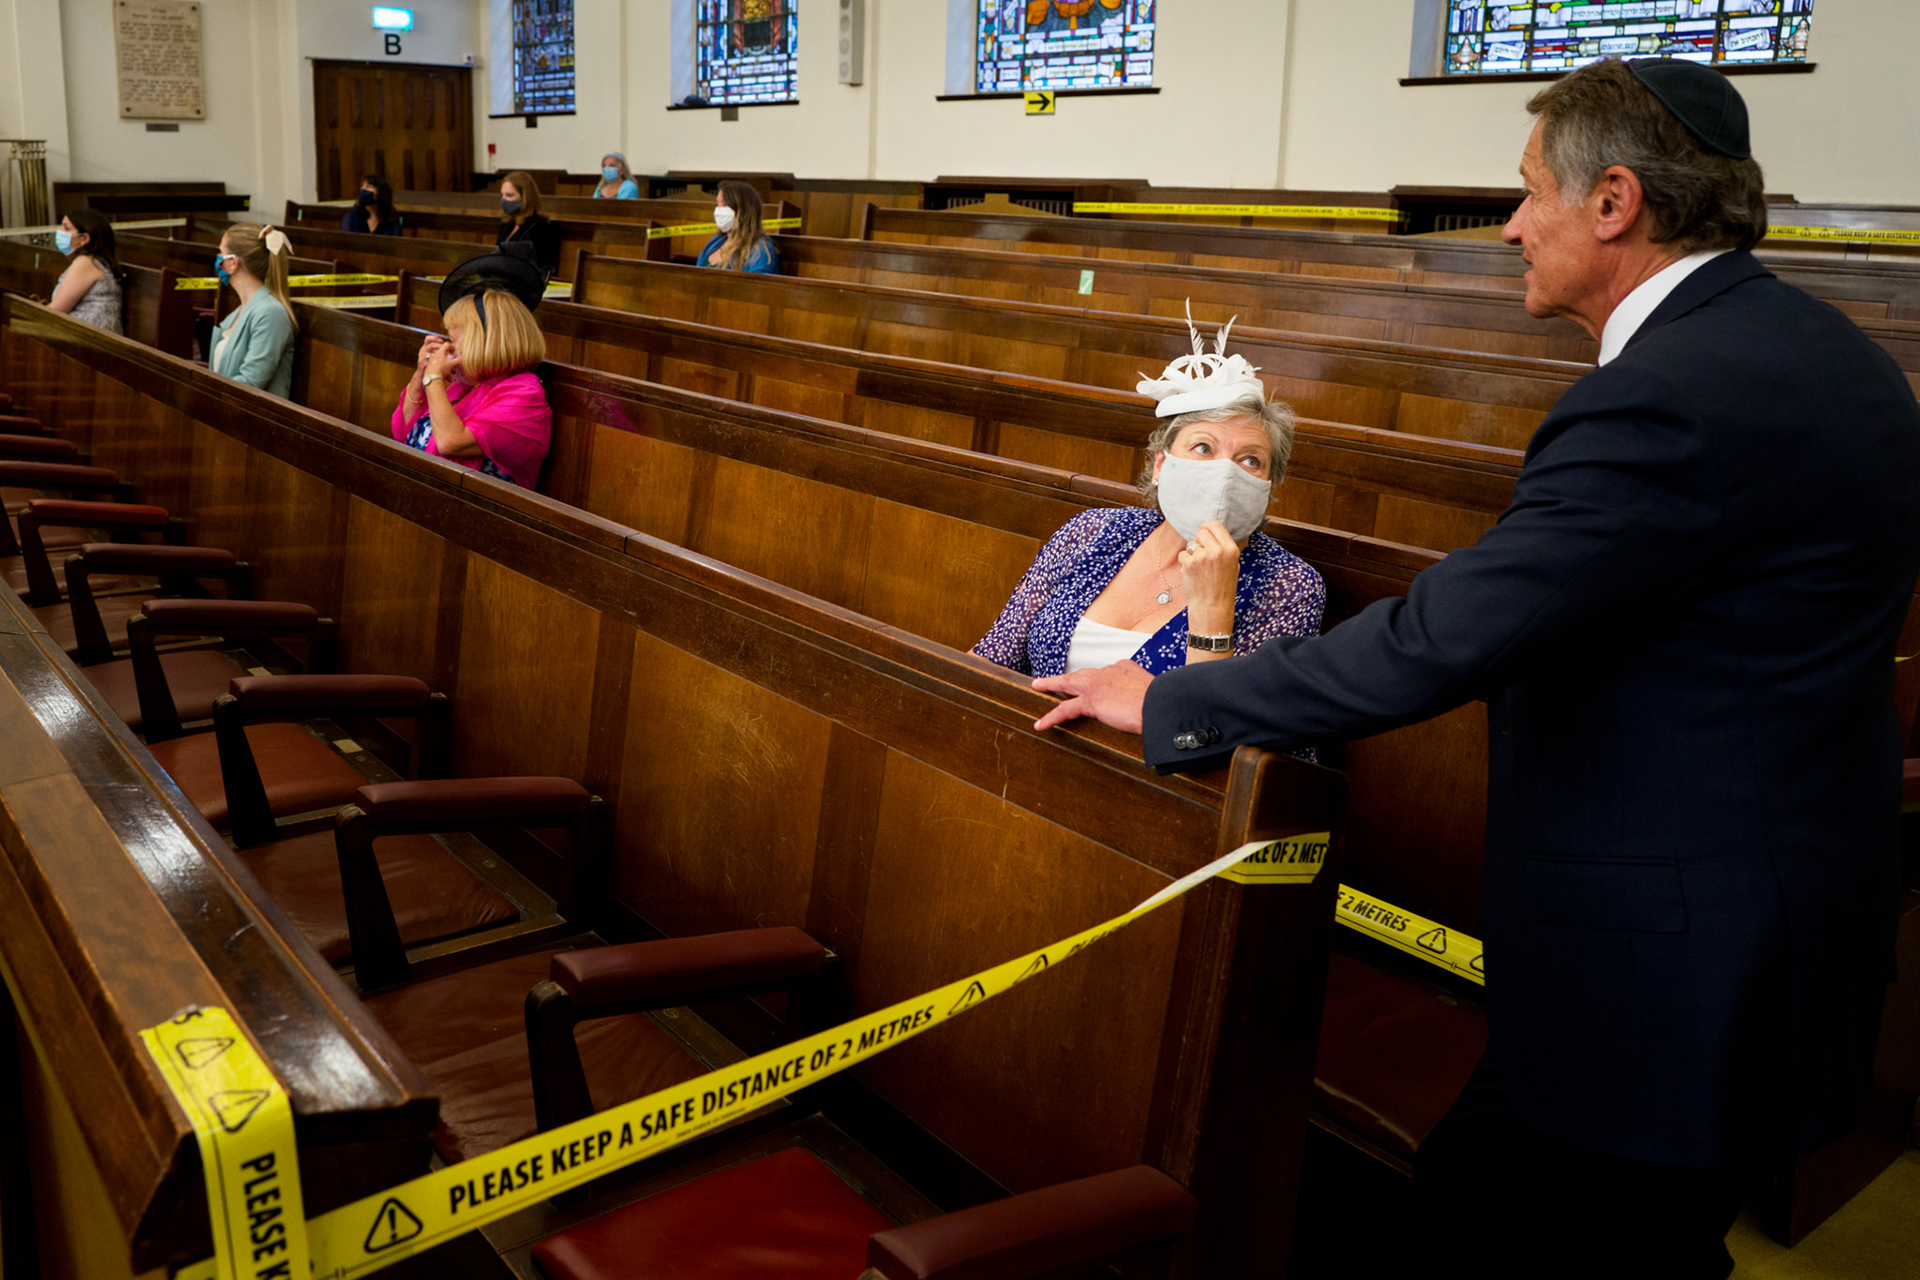 Central - United Synagogue Wedding Elopement Photography | Evidence of the new COVID-19 guidelines in force